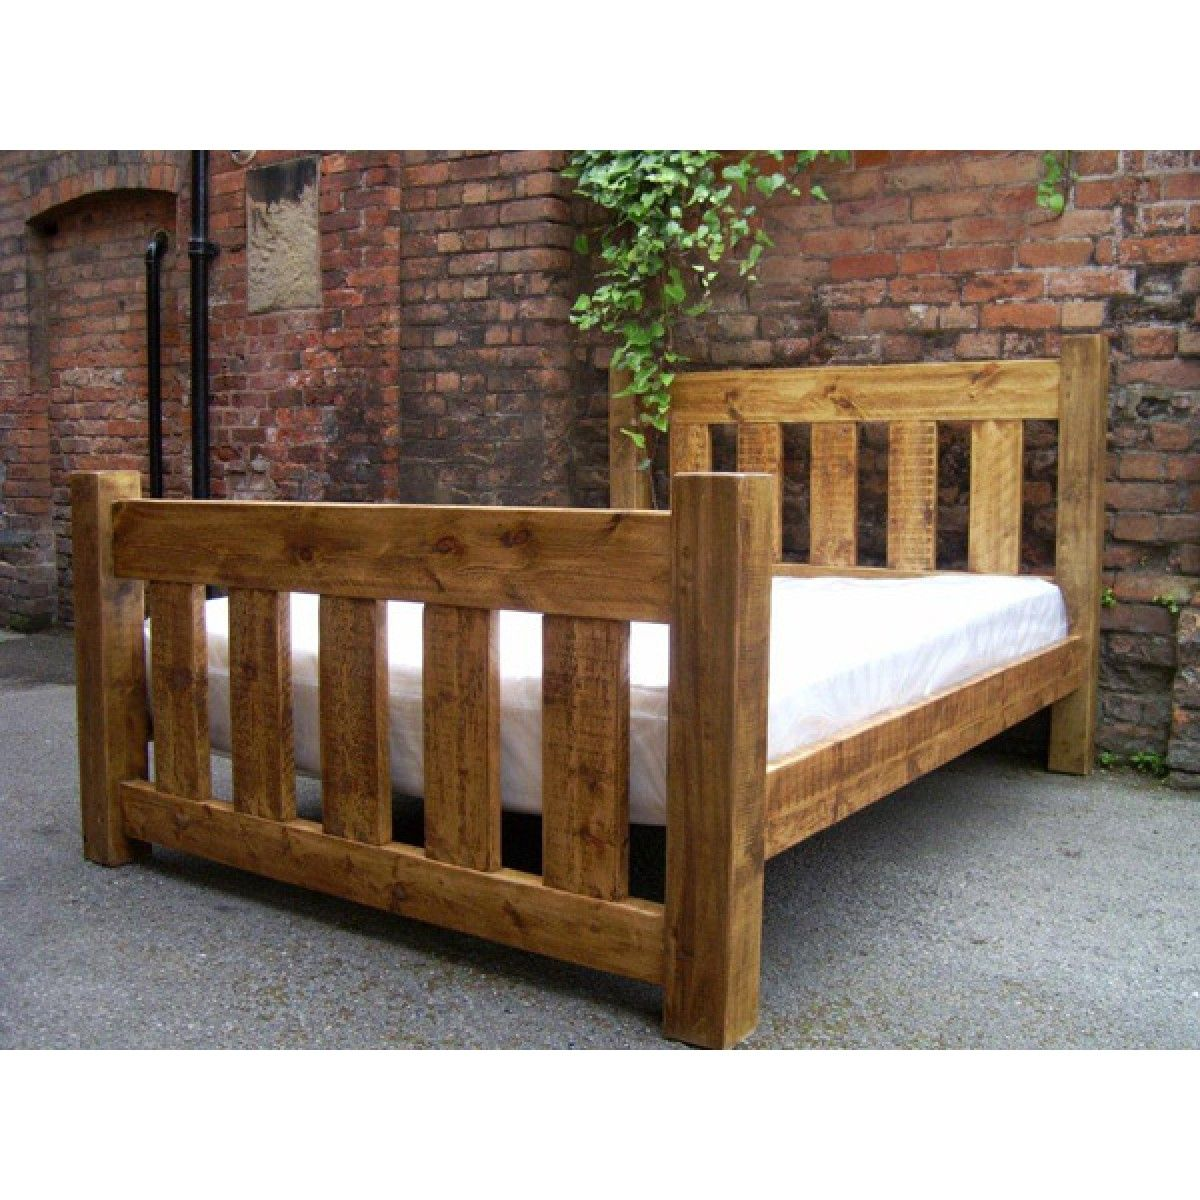 frames mts sims bedframe bed plasticbox mod rustic the d x